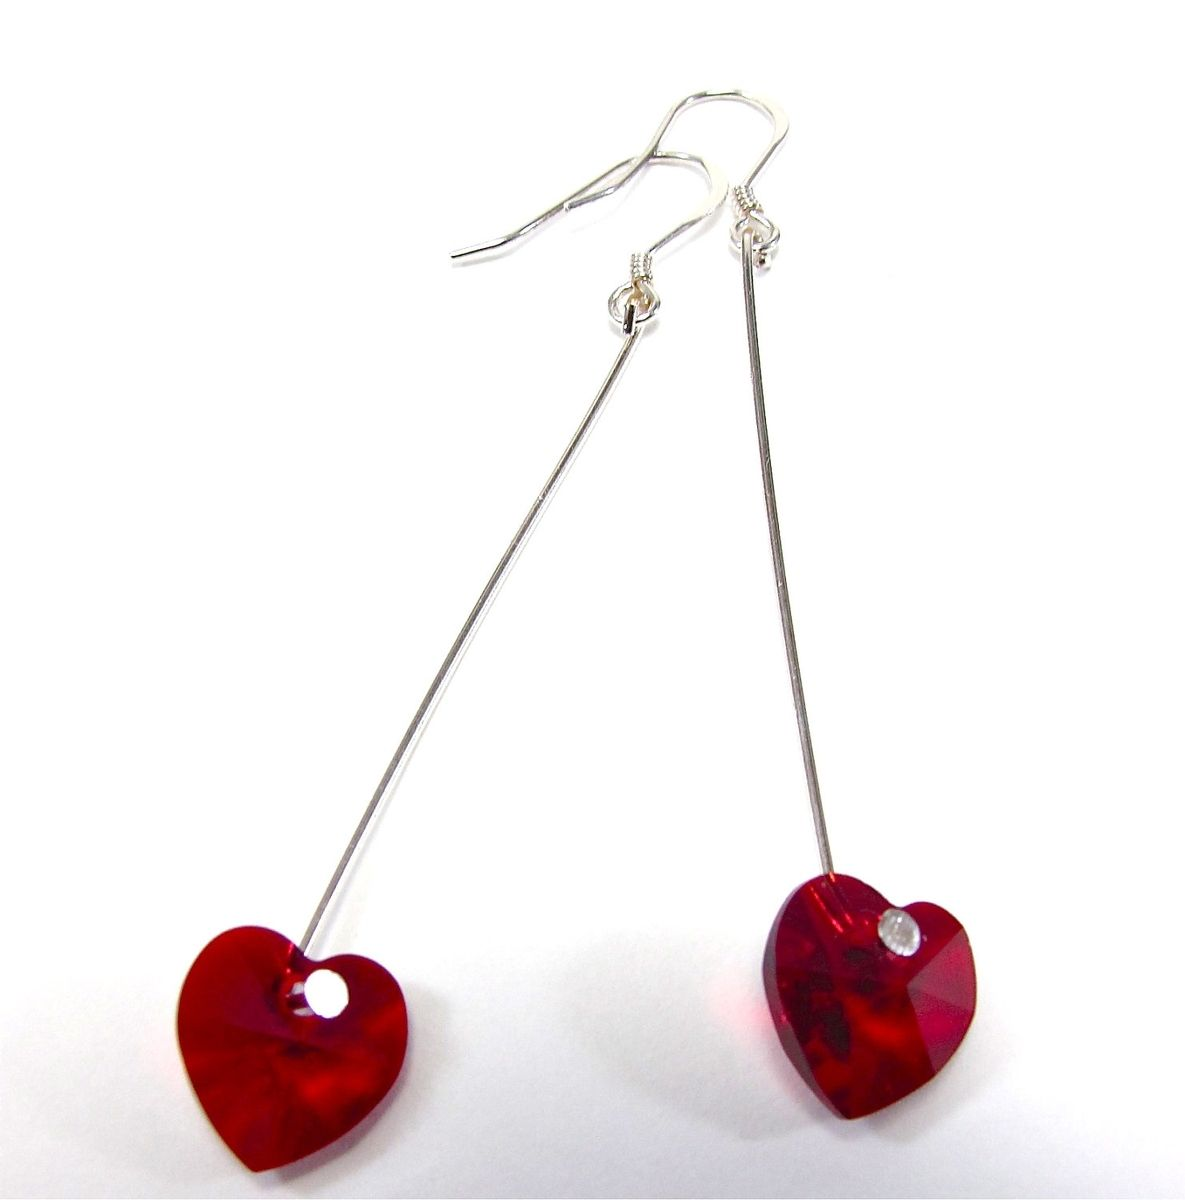 Custom Made Red Heart Earrings  Swarovski Crystal Hearts & Sterling Silver  Dangles  Simple &